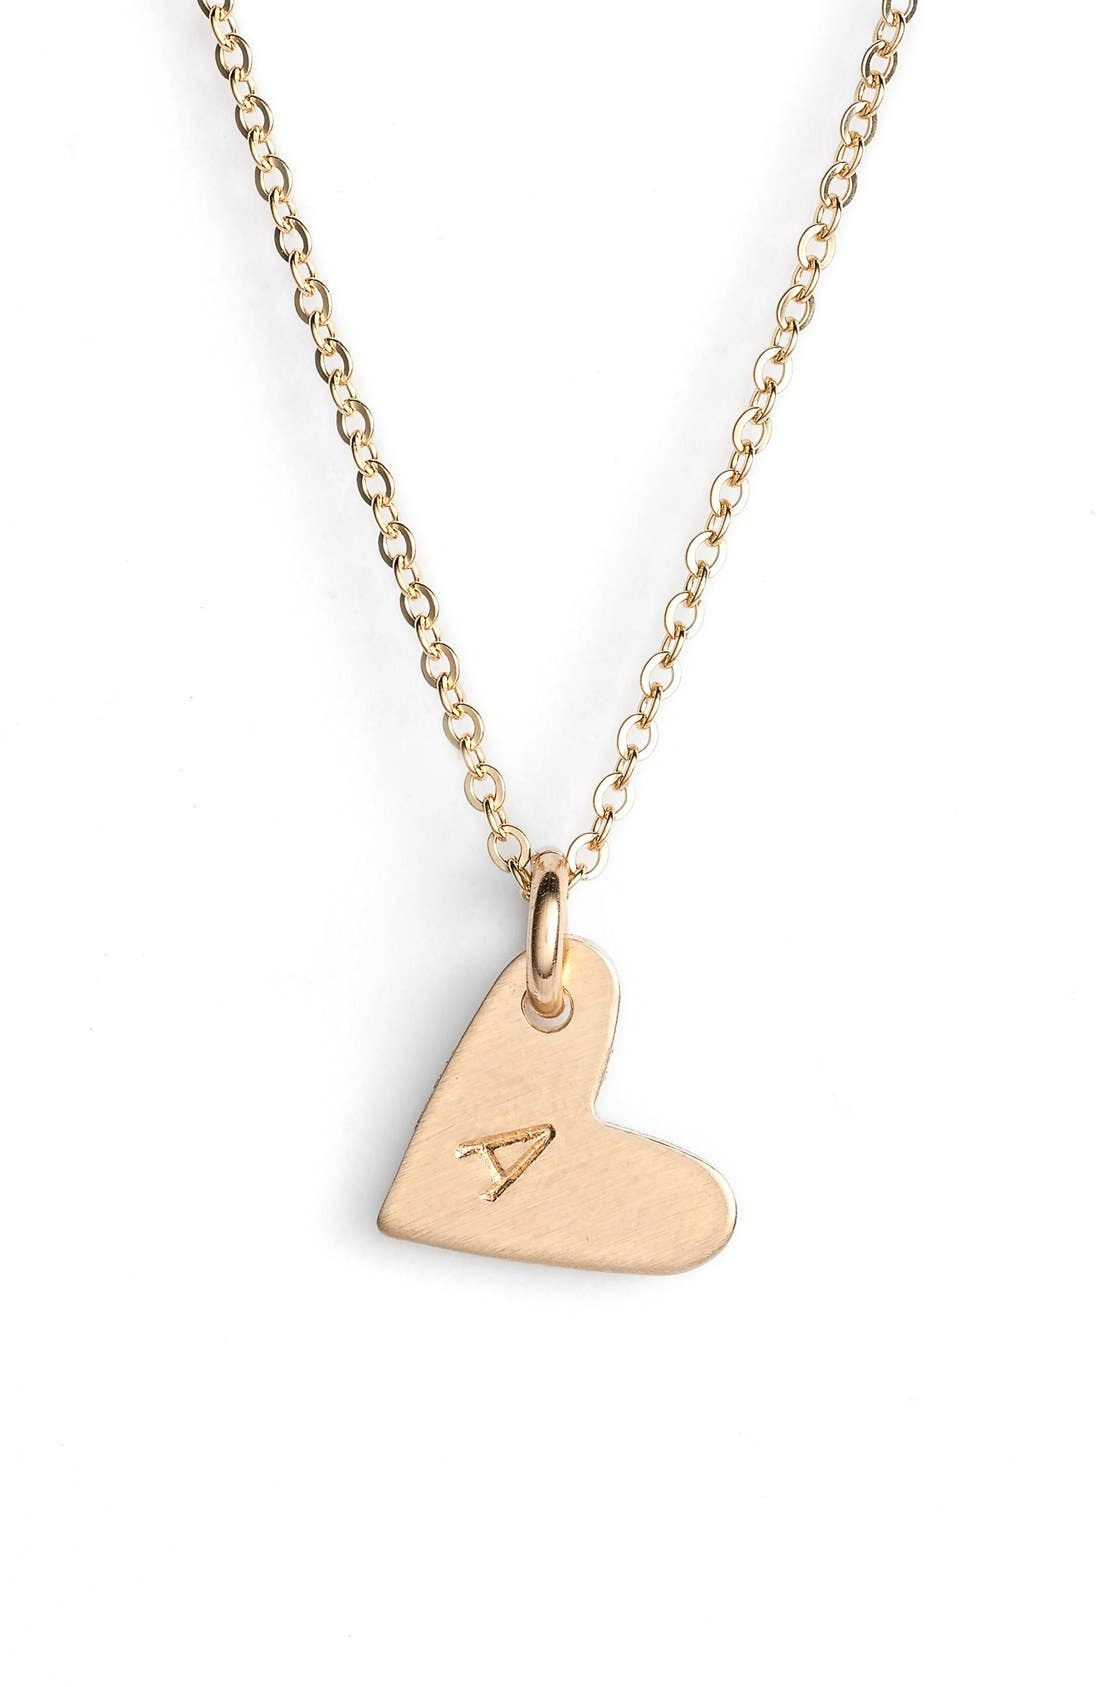 14k-Gold Fill Initial Mini Heart Pendant Necklace, Main, color, GOLD/ A